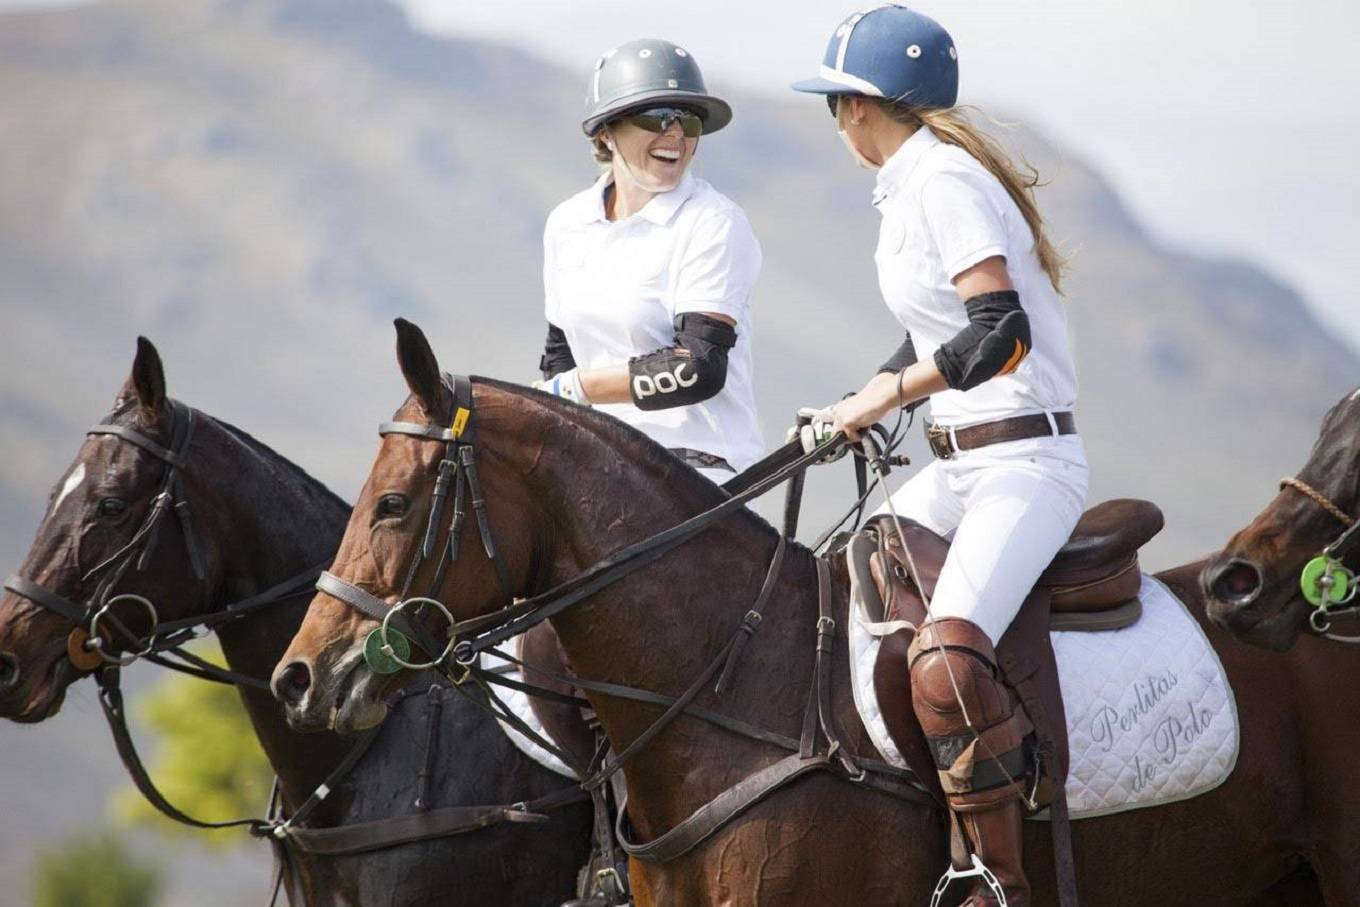 South African Women Polo Players showing off their skills on the ground